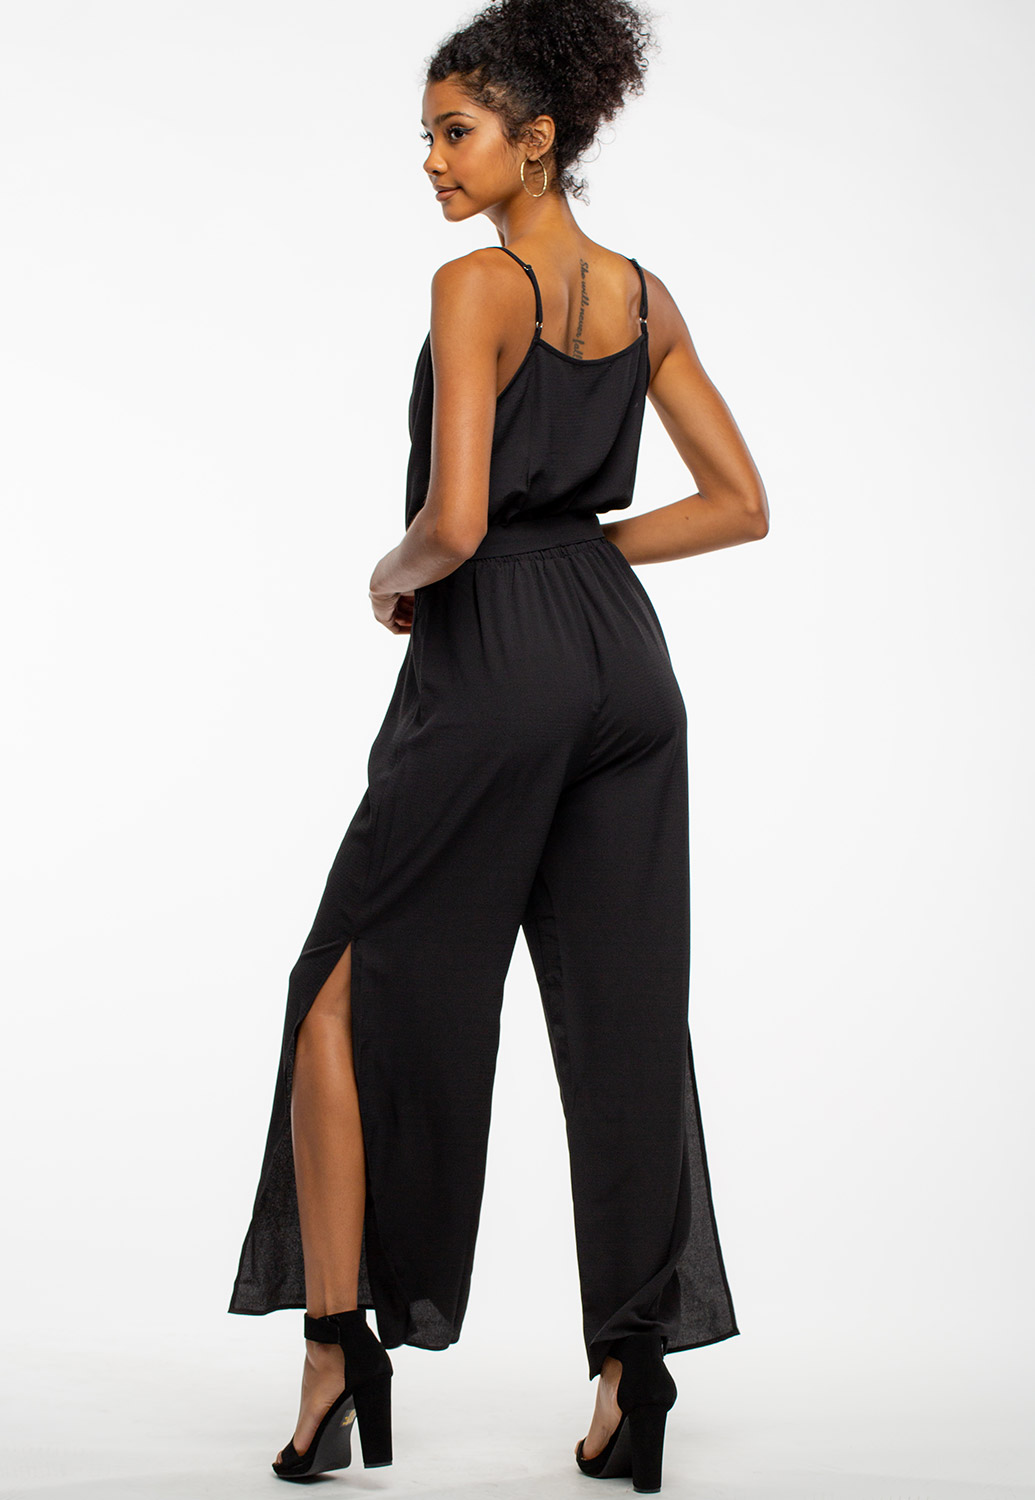 Strappy Dressy Jumpsuit With Side Slit Details